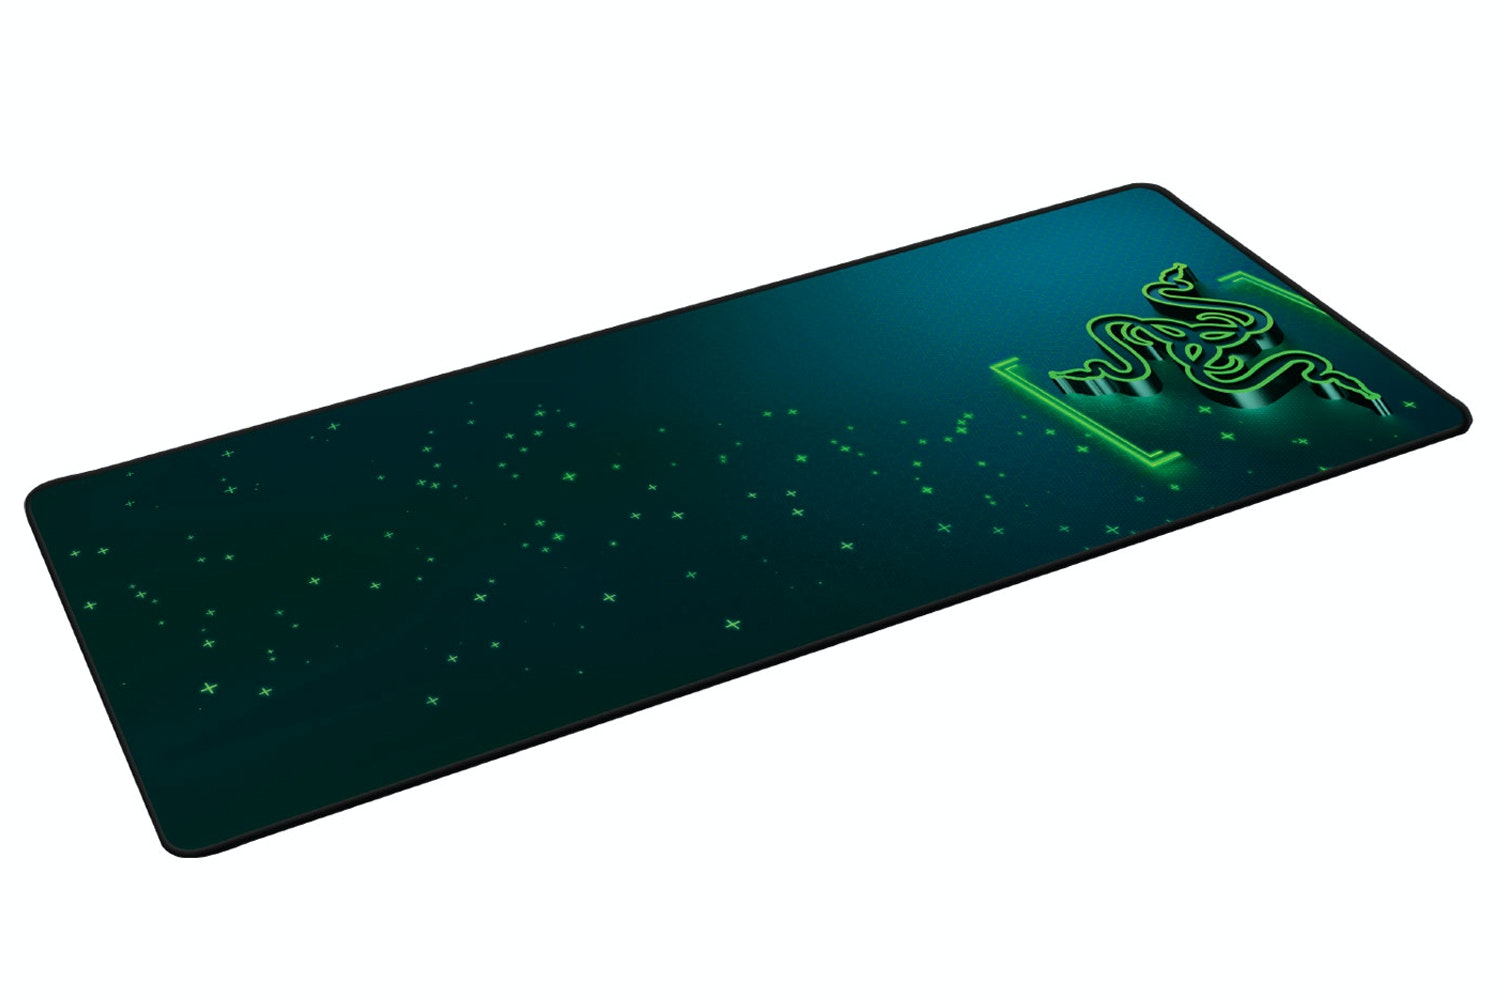 Razer Goliathus Control Gravity Extended Surface